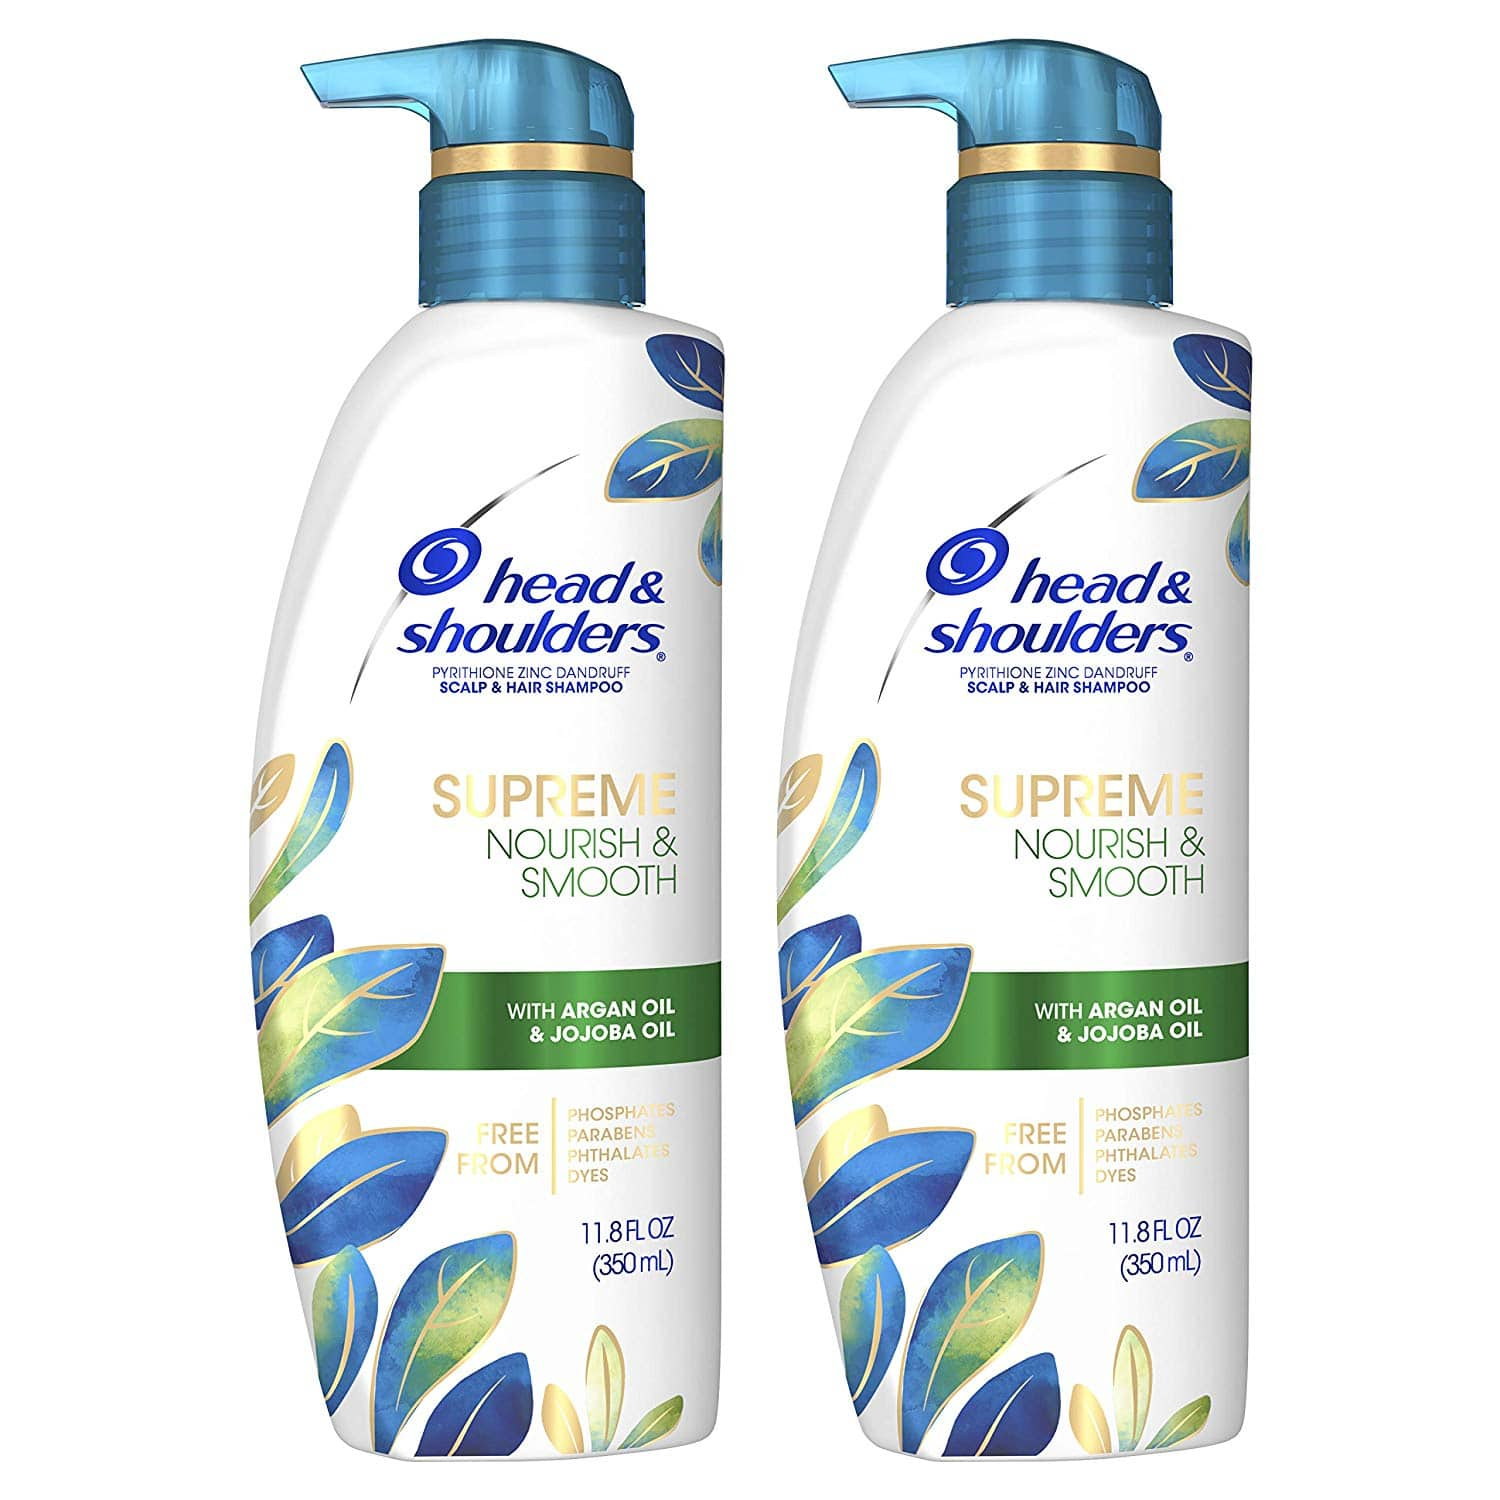 Amazon: 35% Off Head & Shoulders Supreme Packs + Free Shipping w/ Prime $11.69